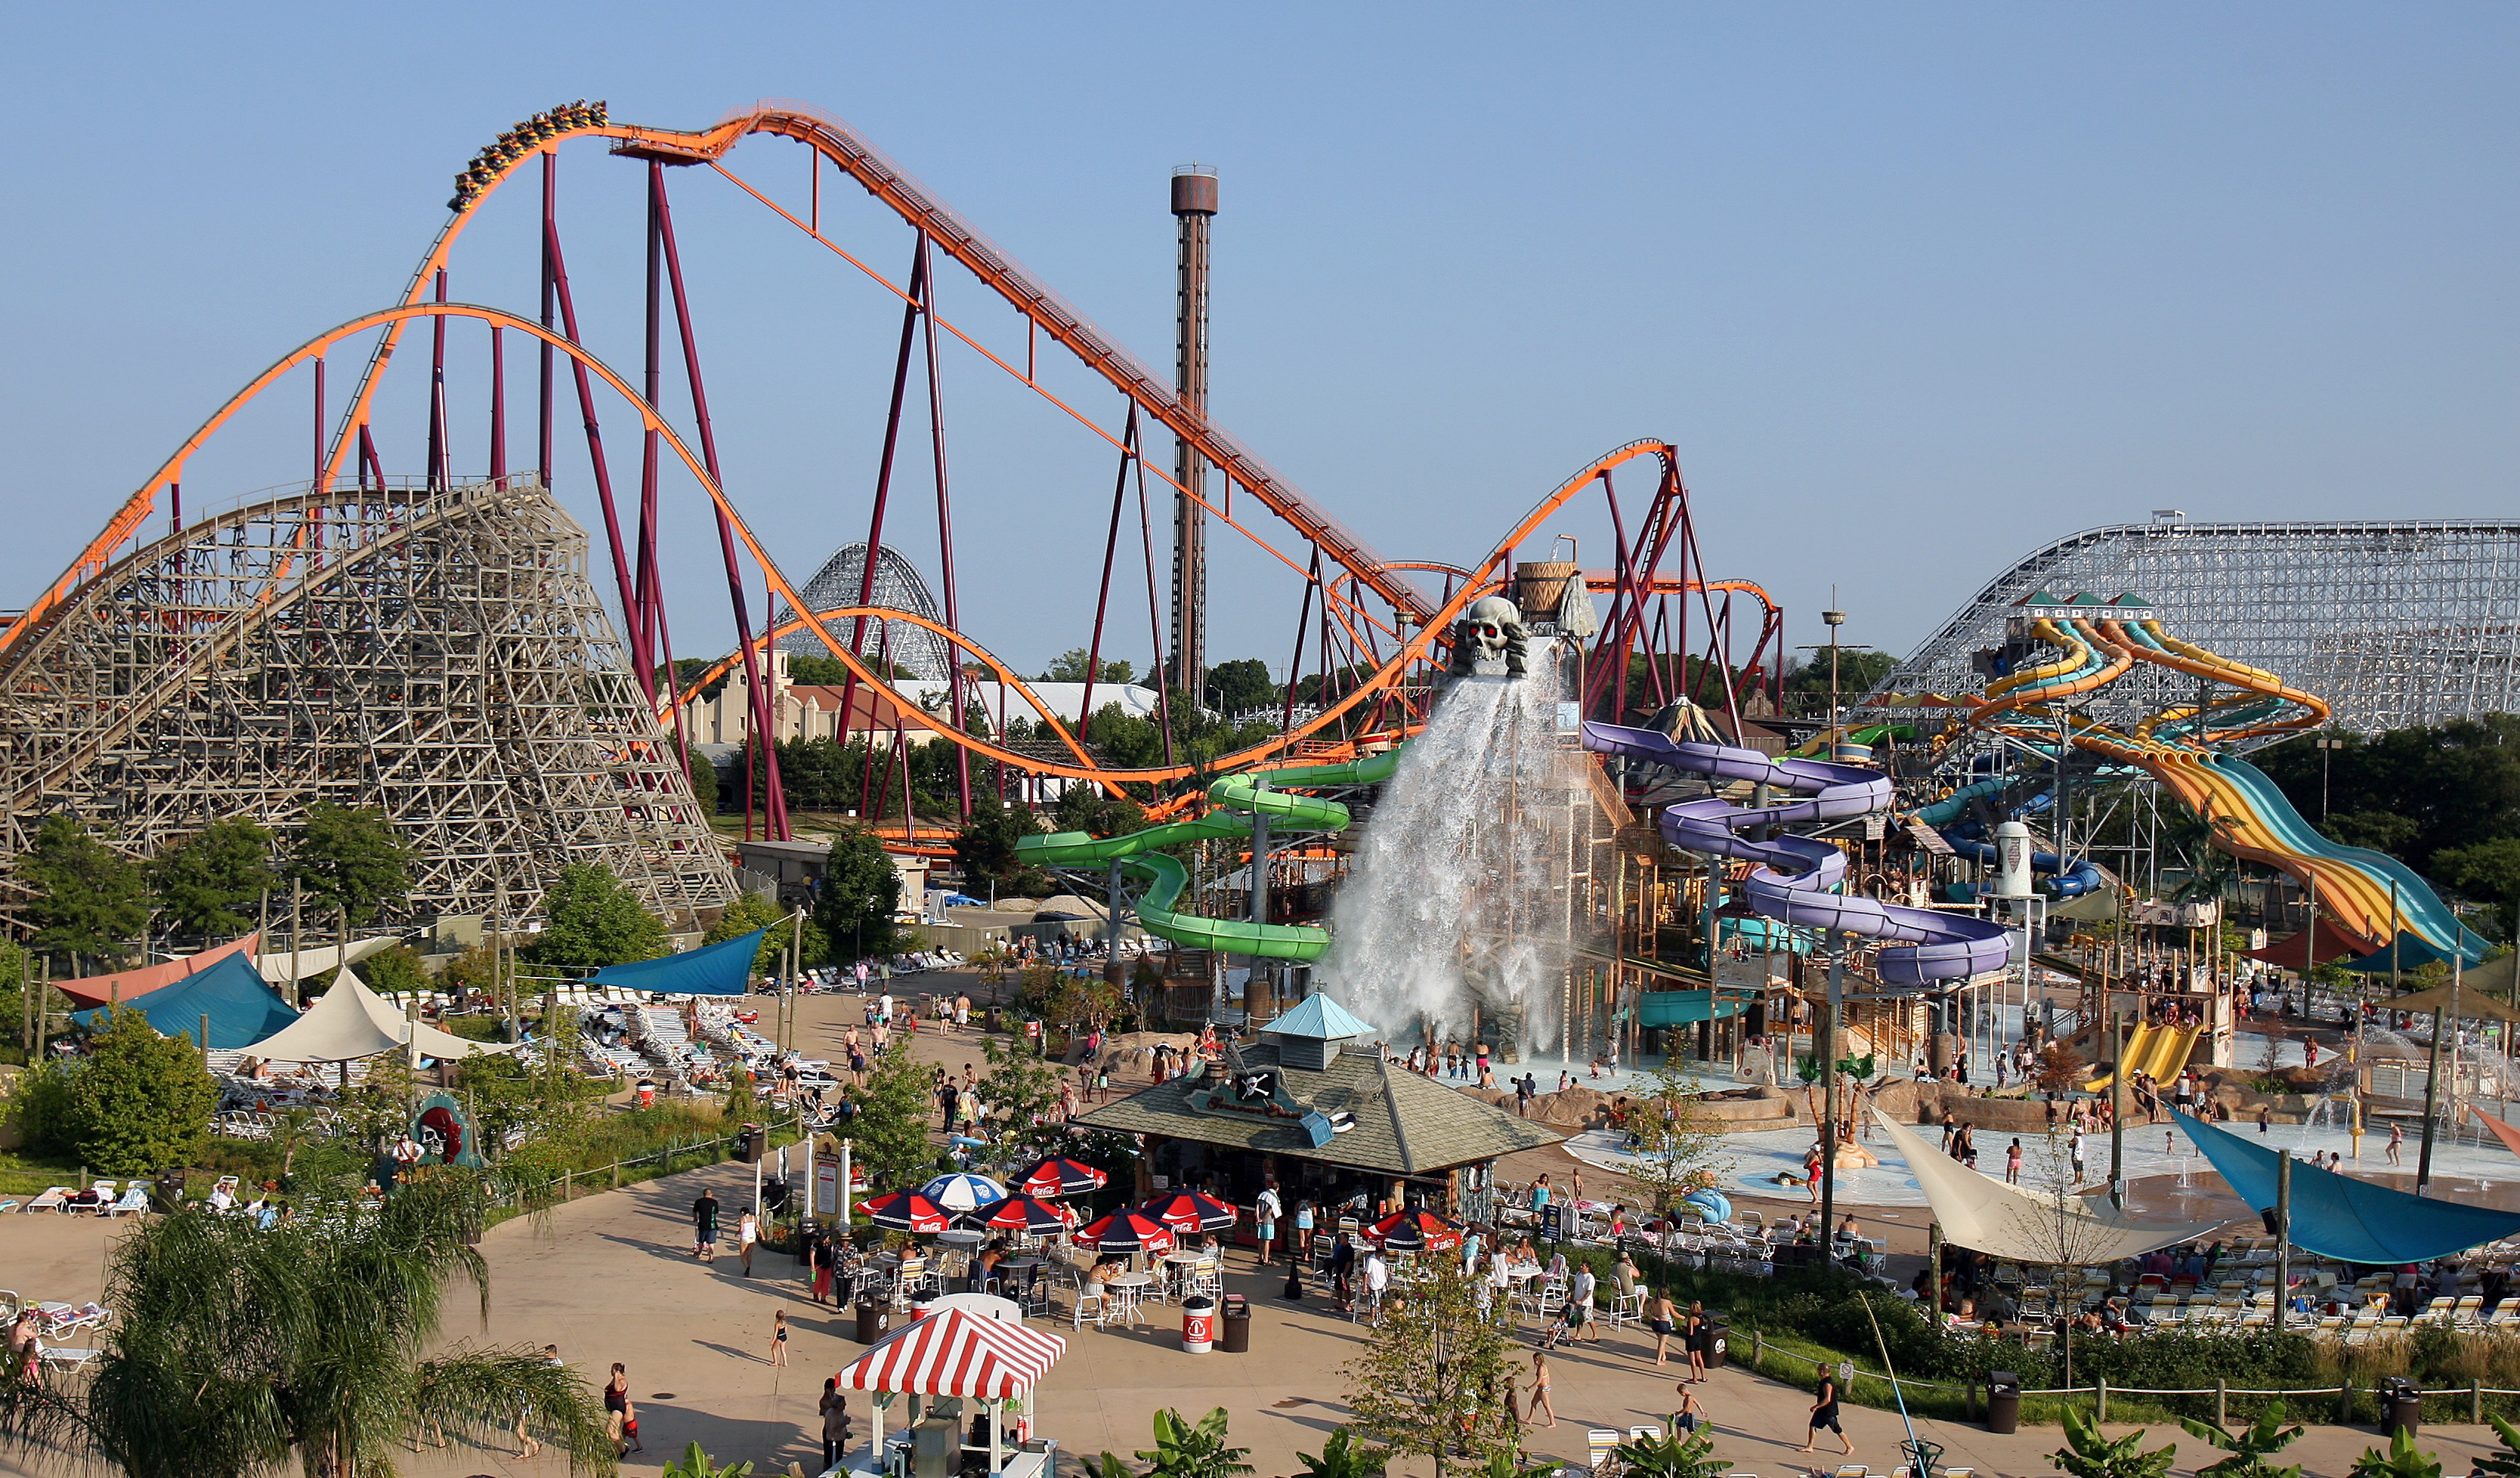 Six Flags Great America In Chicagoland To Reopen On April 24